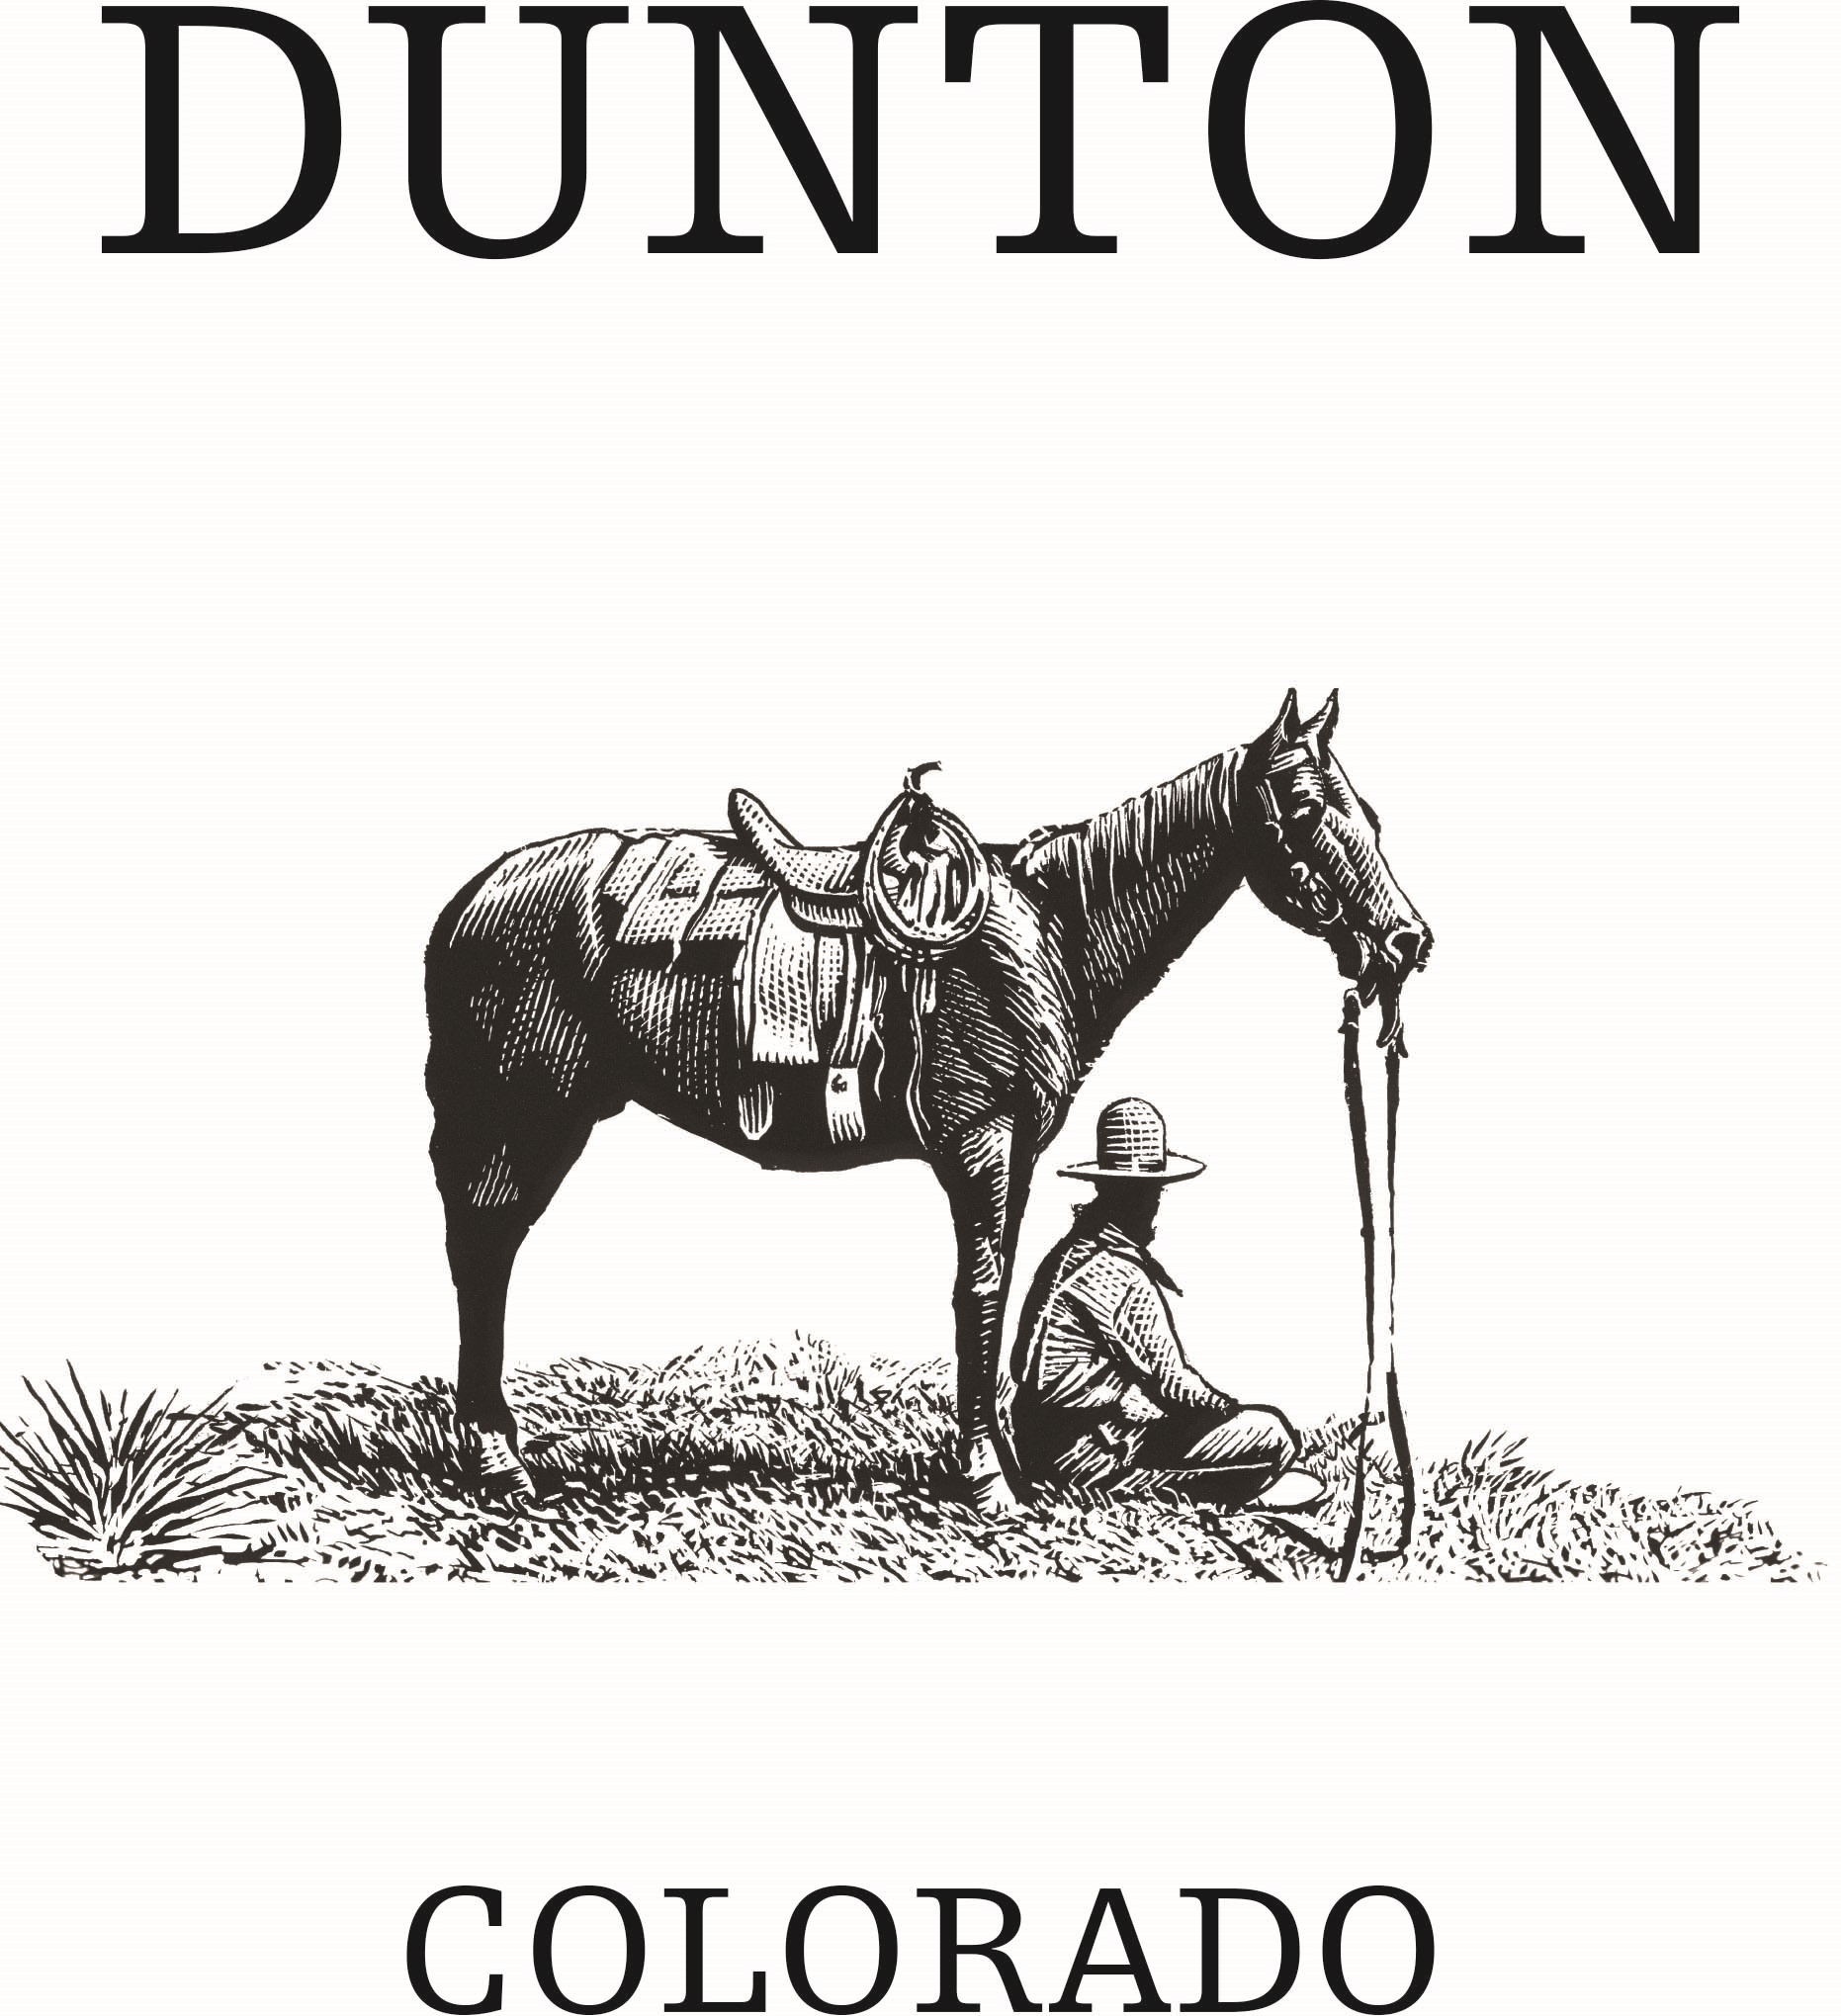 dunton-colorado.jpg